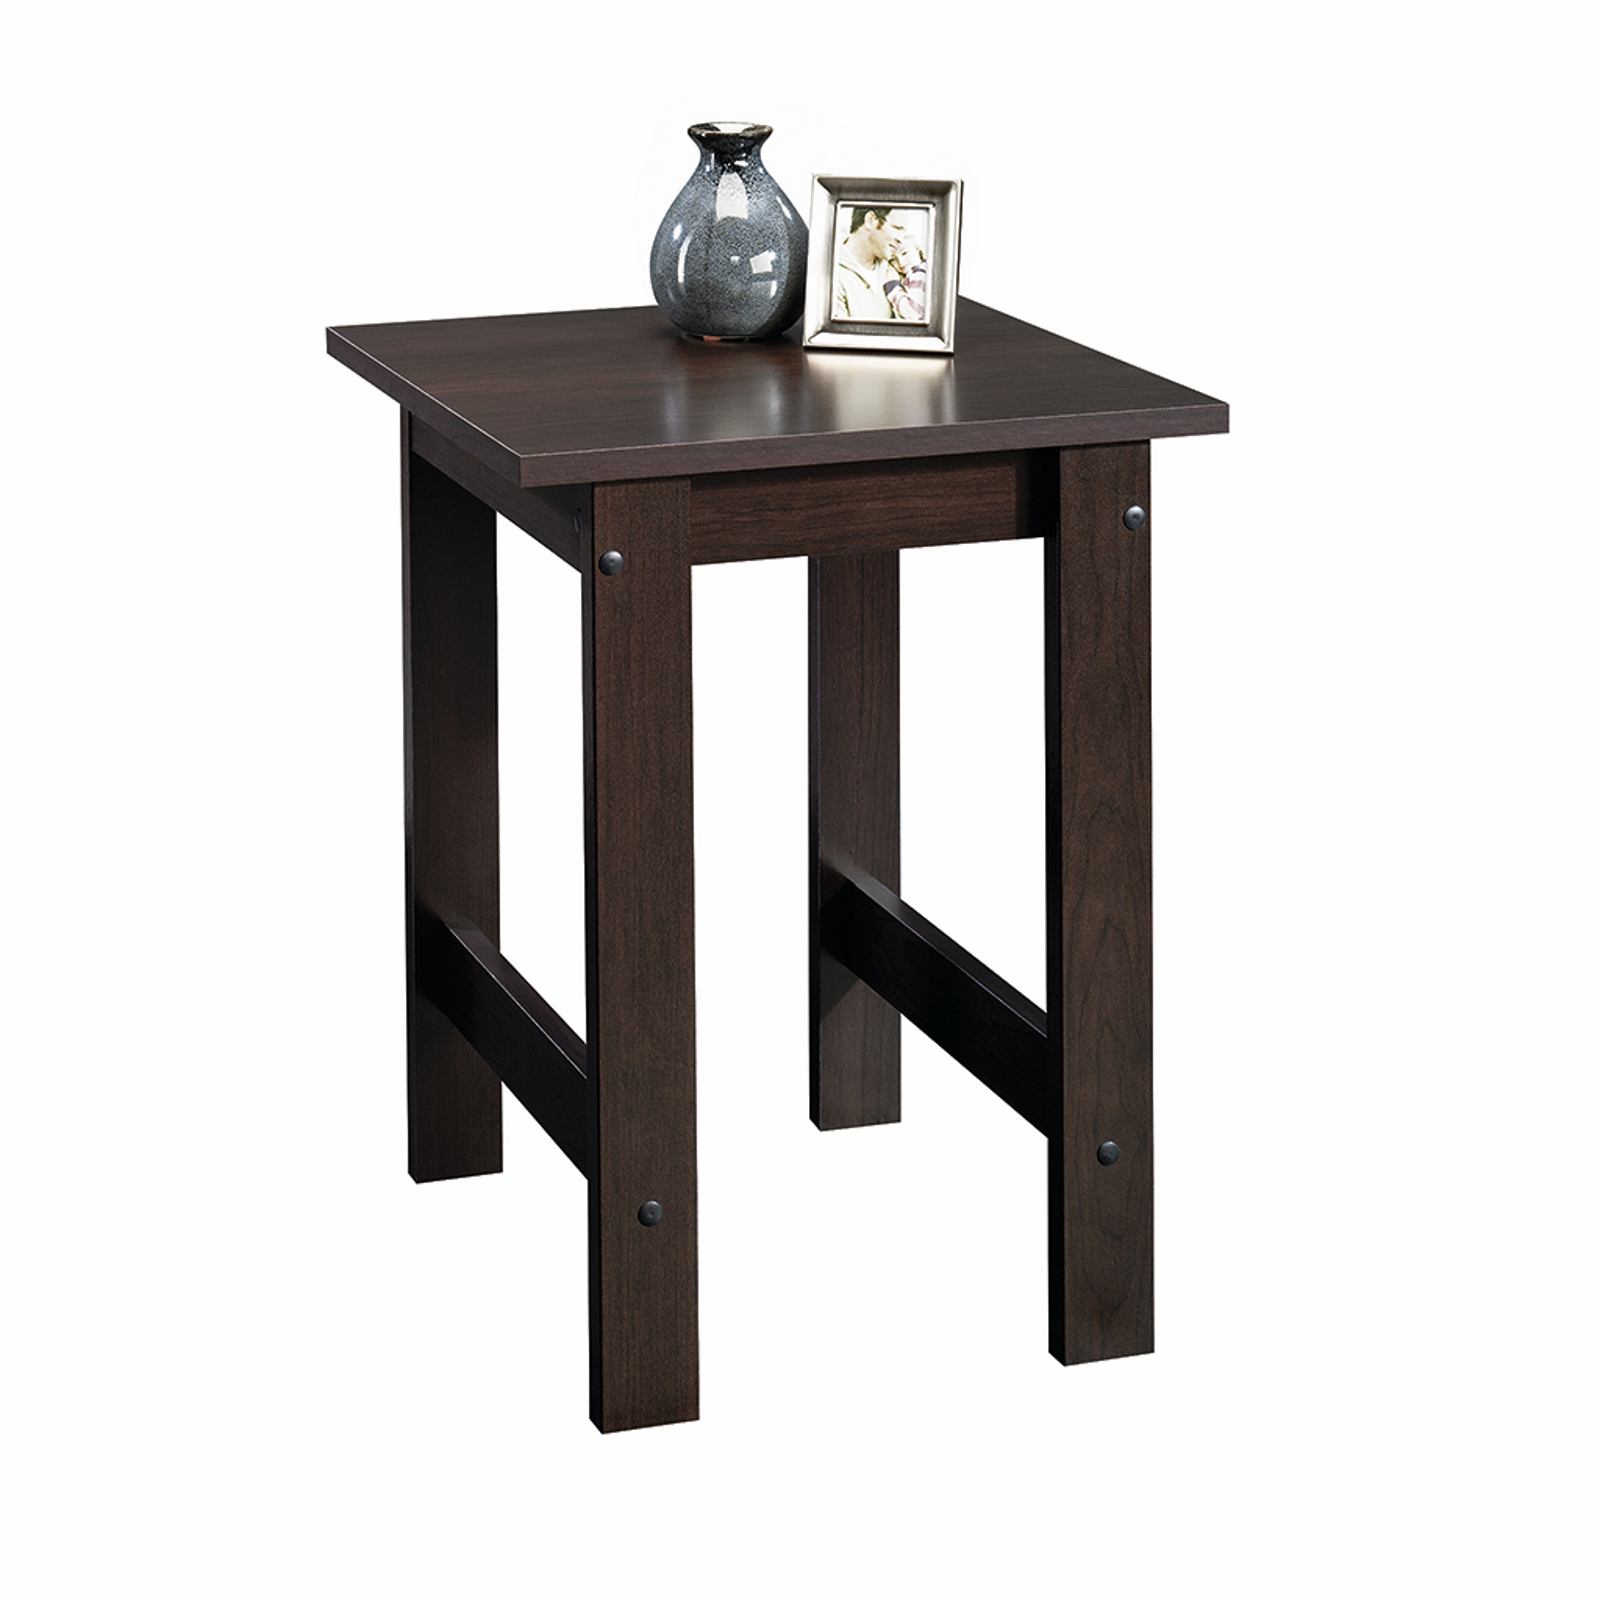 sauder beginnings side table cinnamon cherry spin prod outdoor kmart shell lamp large round wood coffee pier dining room chairs magazine feather light shade patio furniture covers